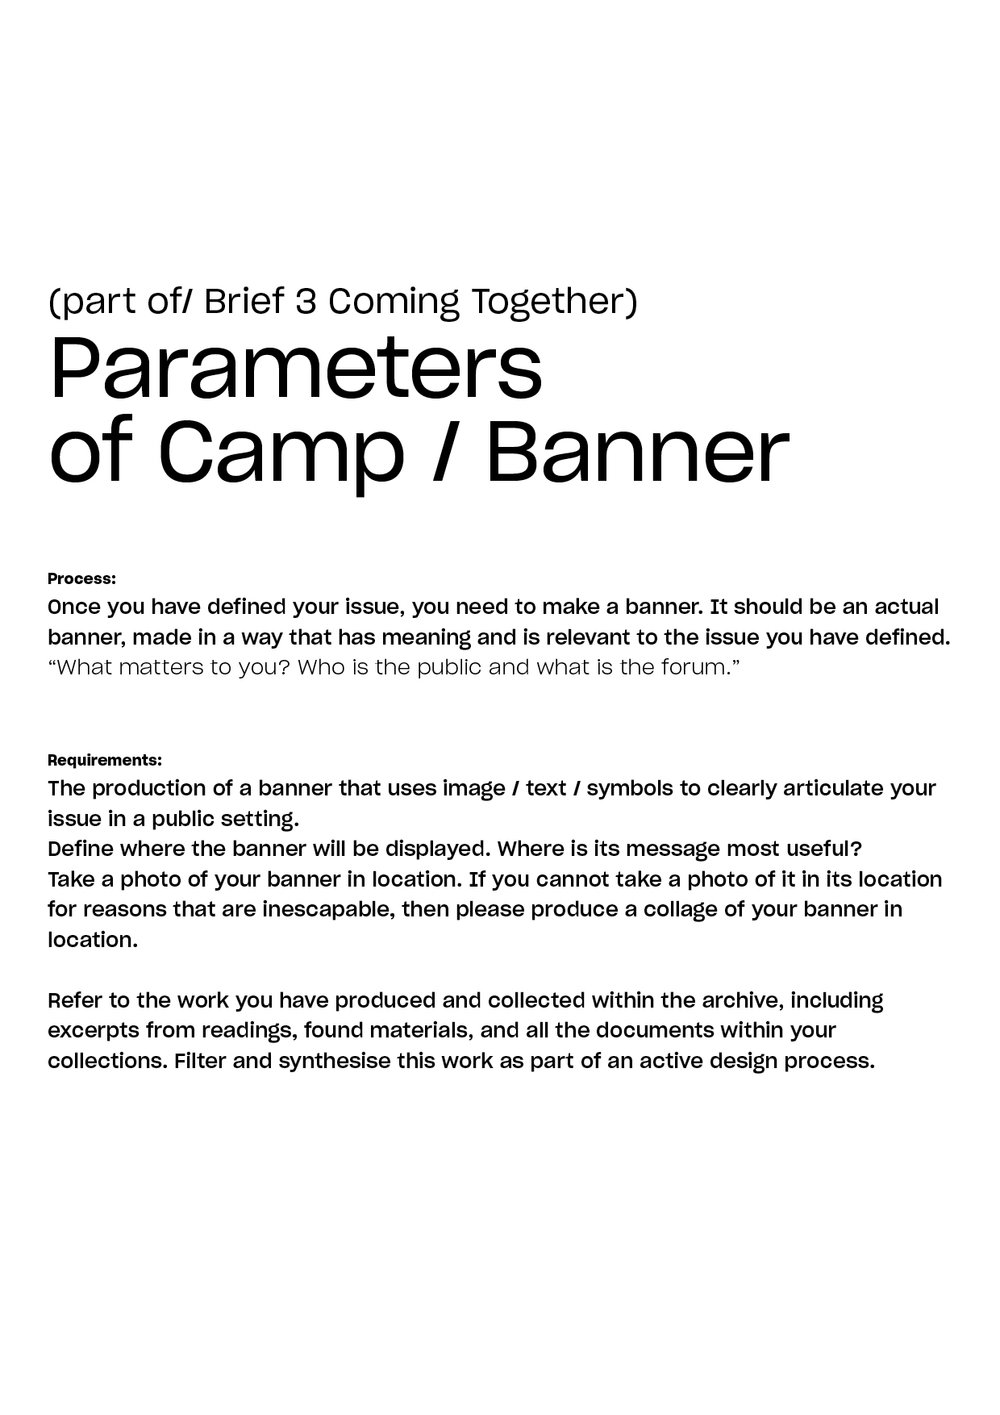 Brief_Counter-Culture-Camp-Ground_0118.jpg